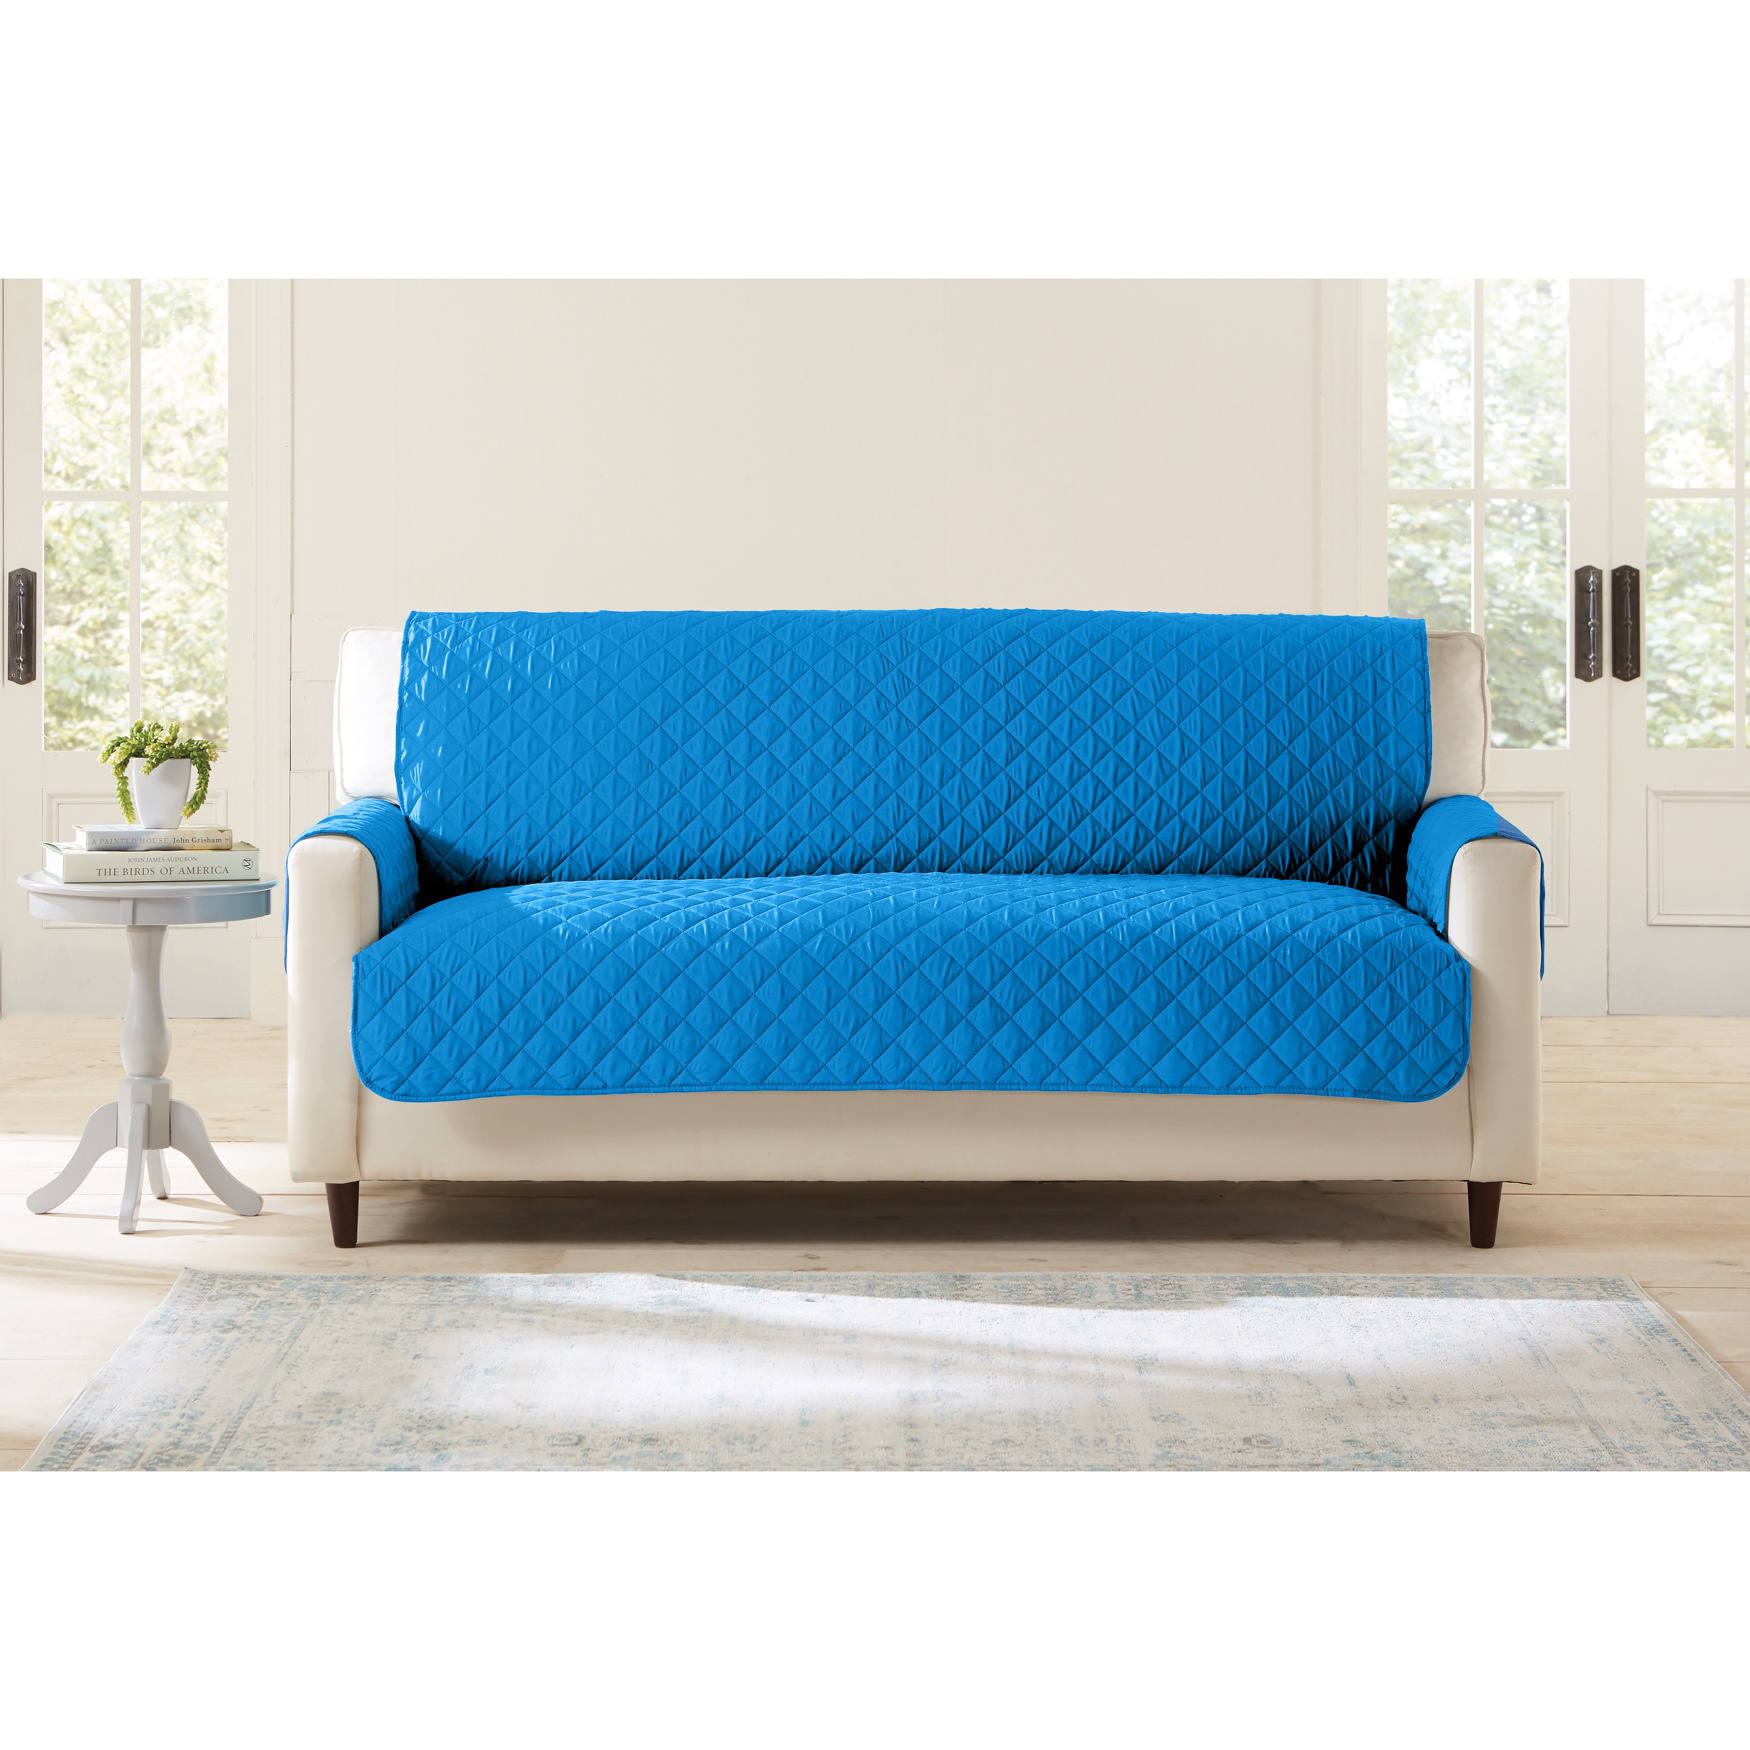 BH Studio Water-Repellent Microfiber Extra-Long Sofa Protector,